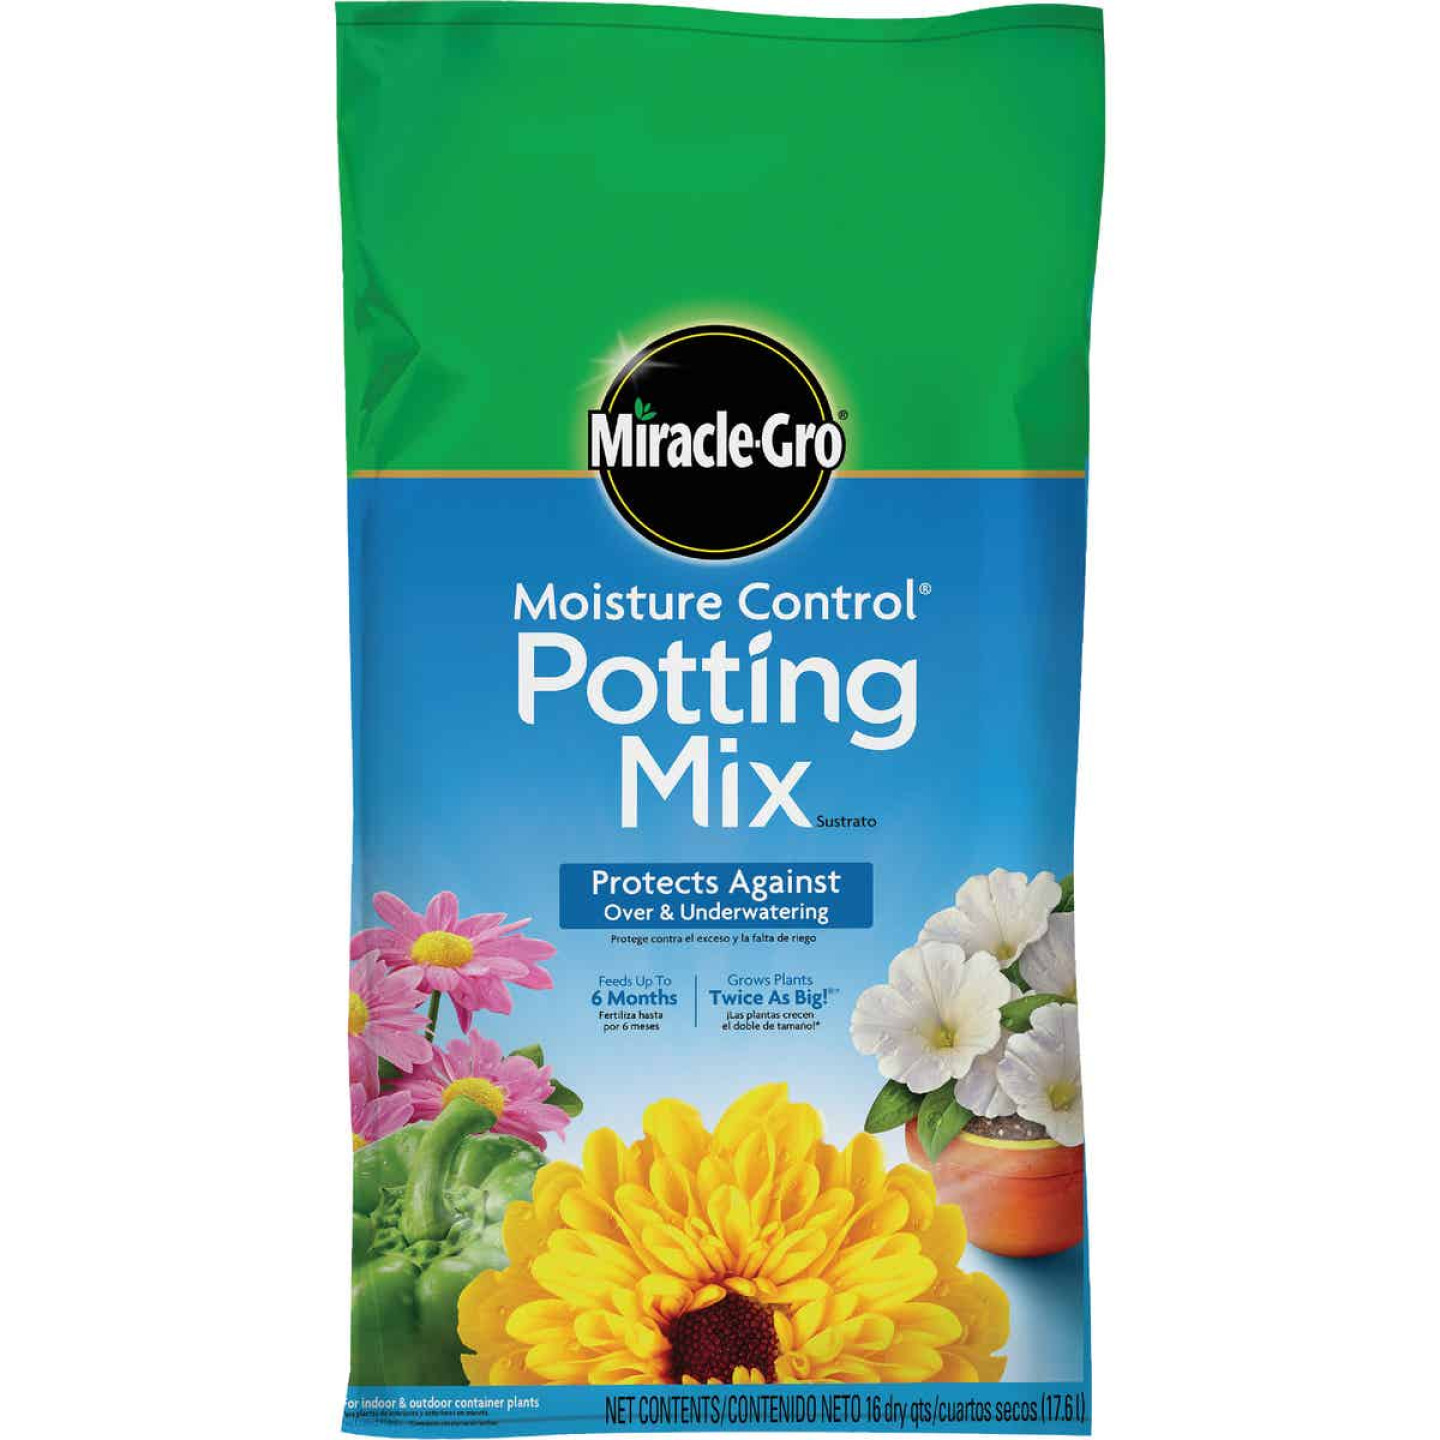 Miracle-Gro Moisture Control 16 Qt. 13 Lb. Indoor & Outdoor Potting Soil Image 1